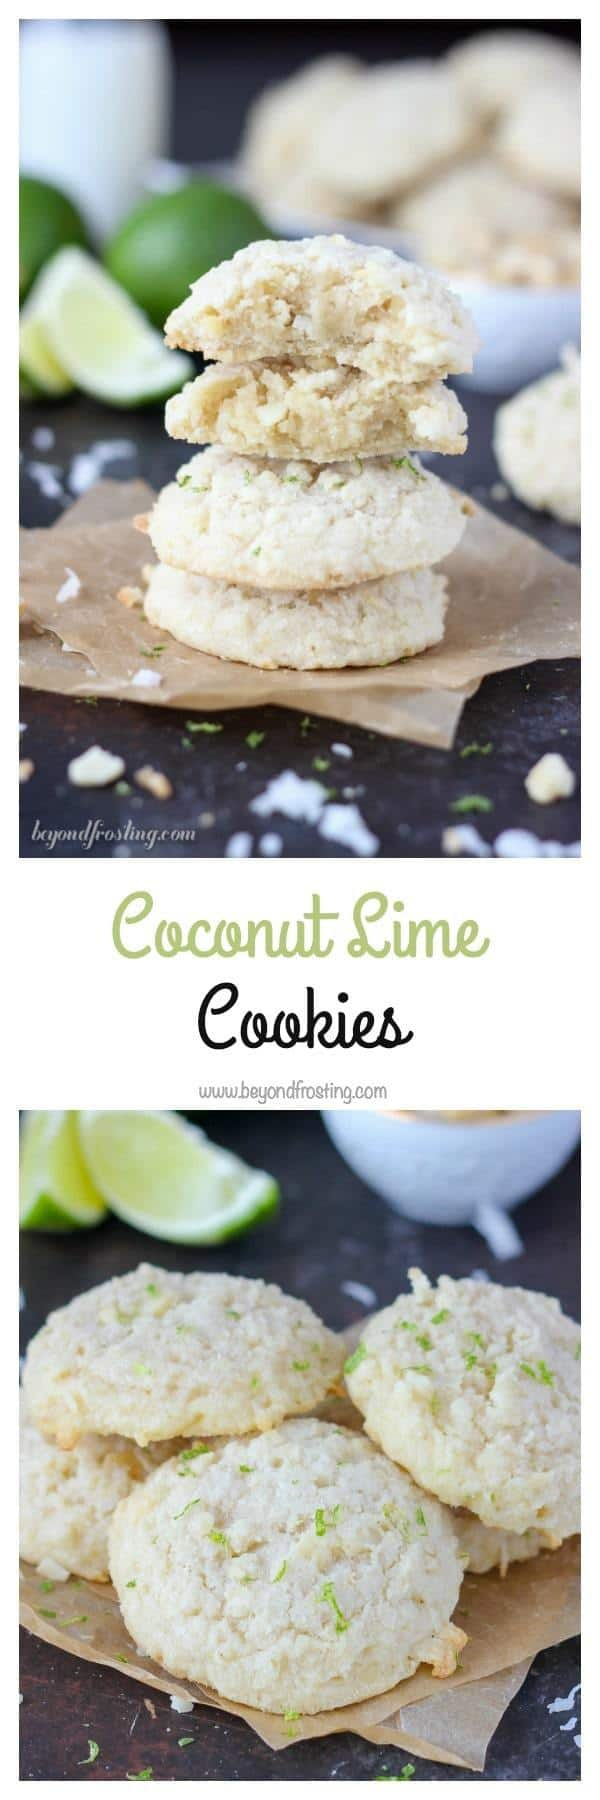 These thick and chunky Coconut Lime Cookies are the perfect summer time treat! The soft cookies are loaded with sweetened coconut and lime zest. Grab the recipe at www. beyondfrosting.com